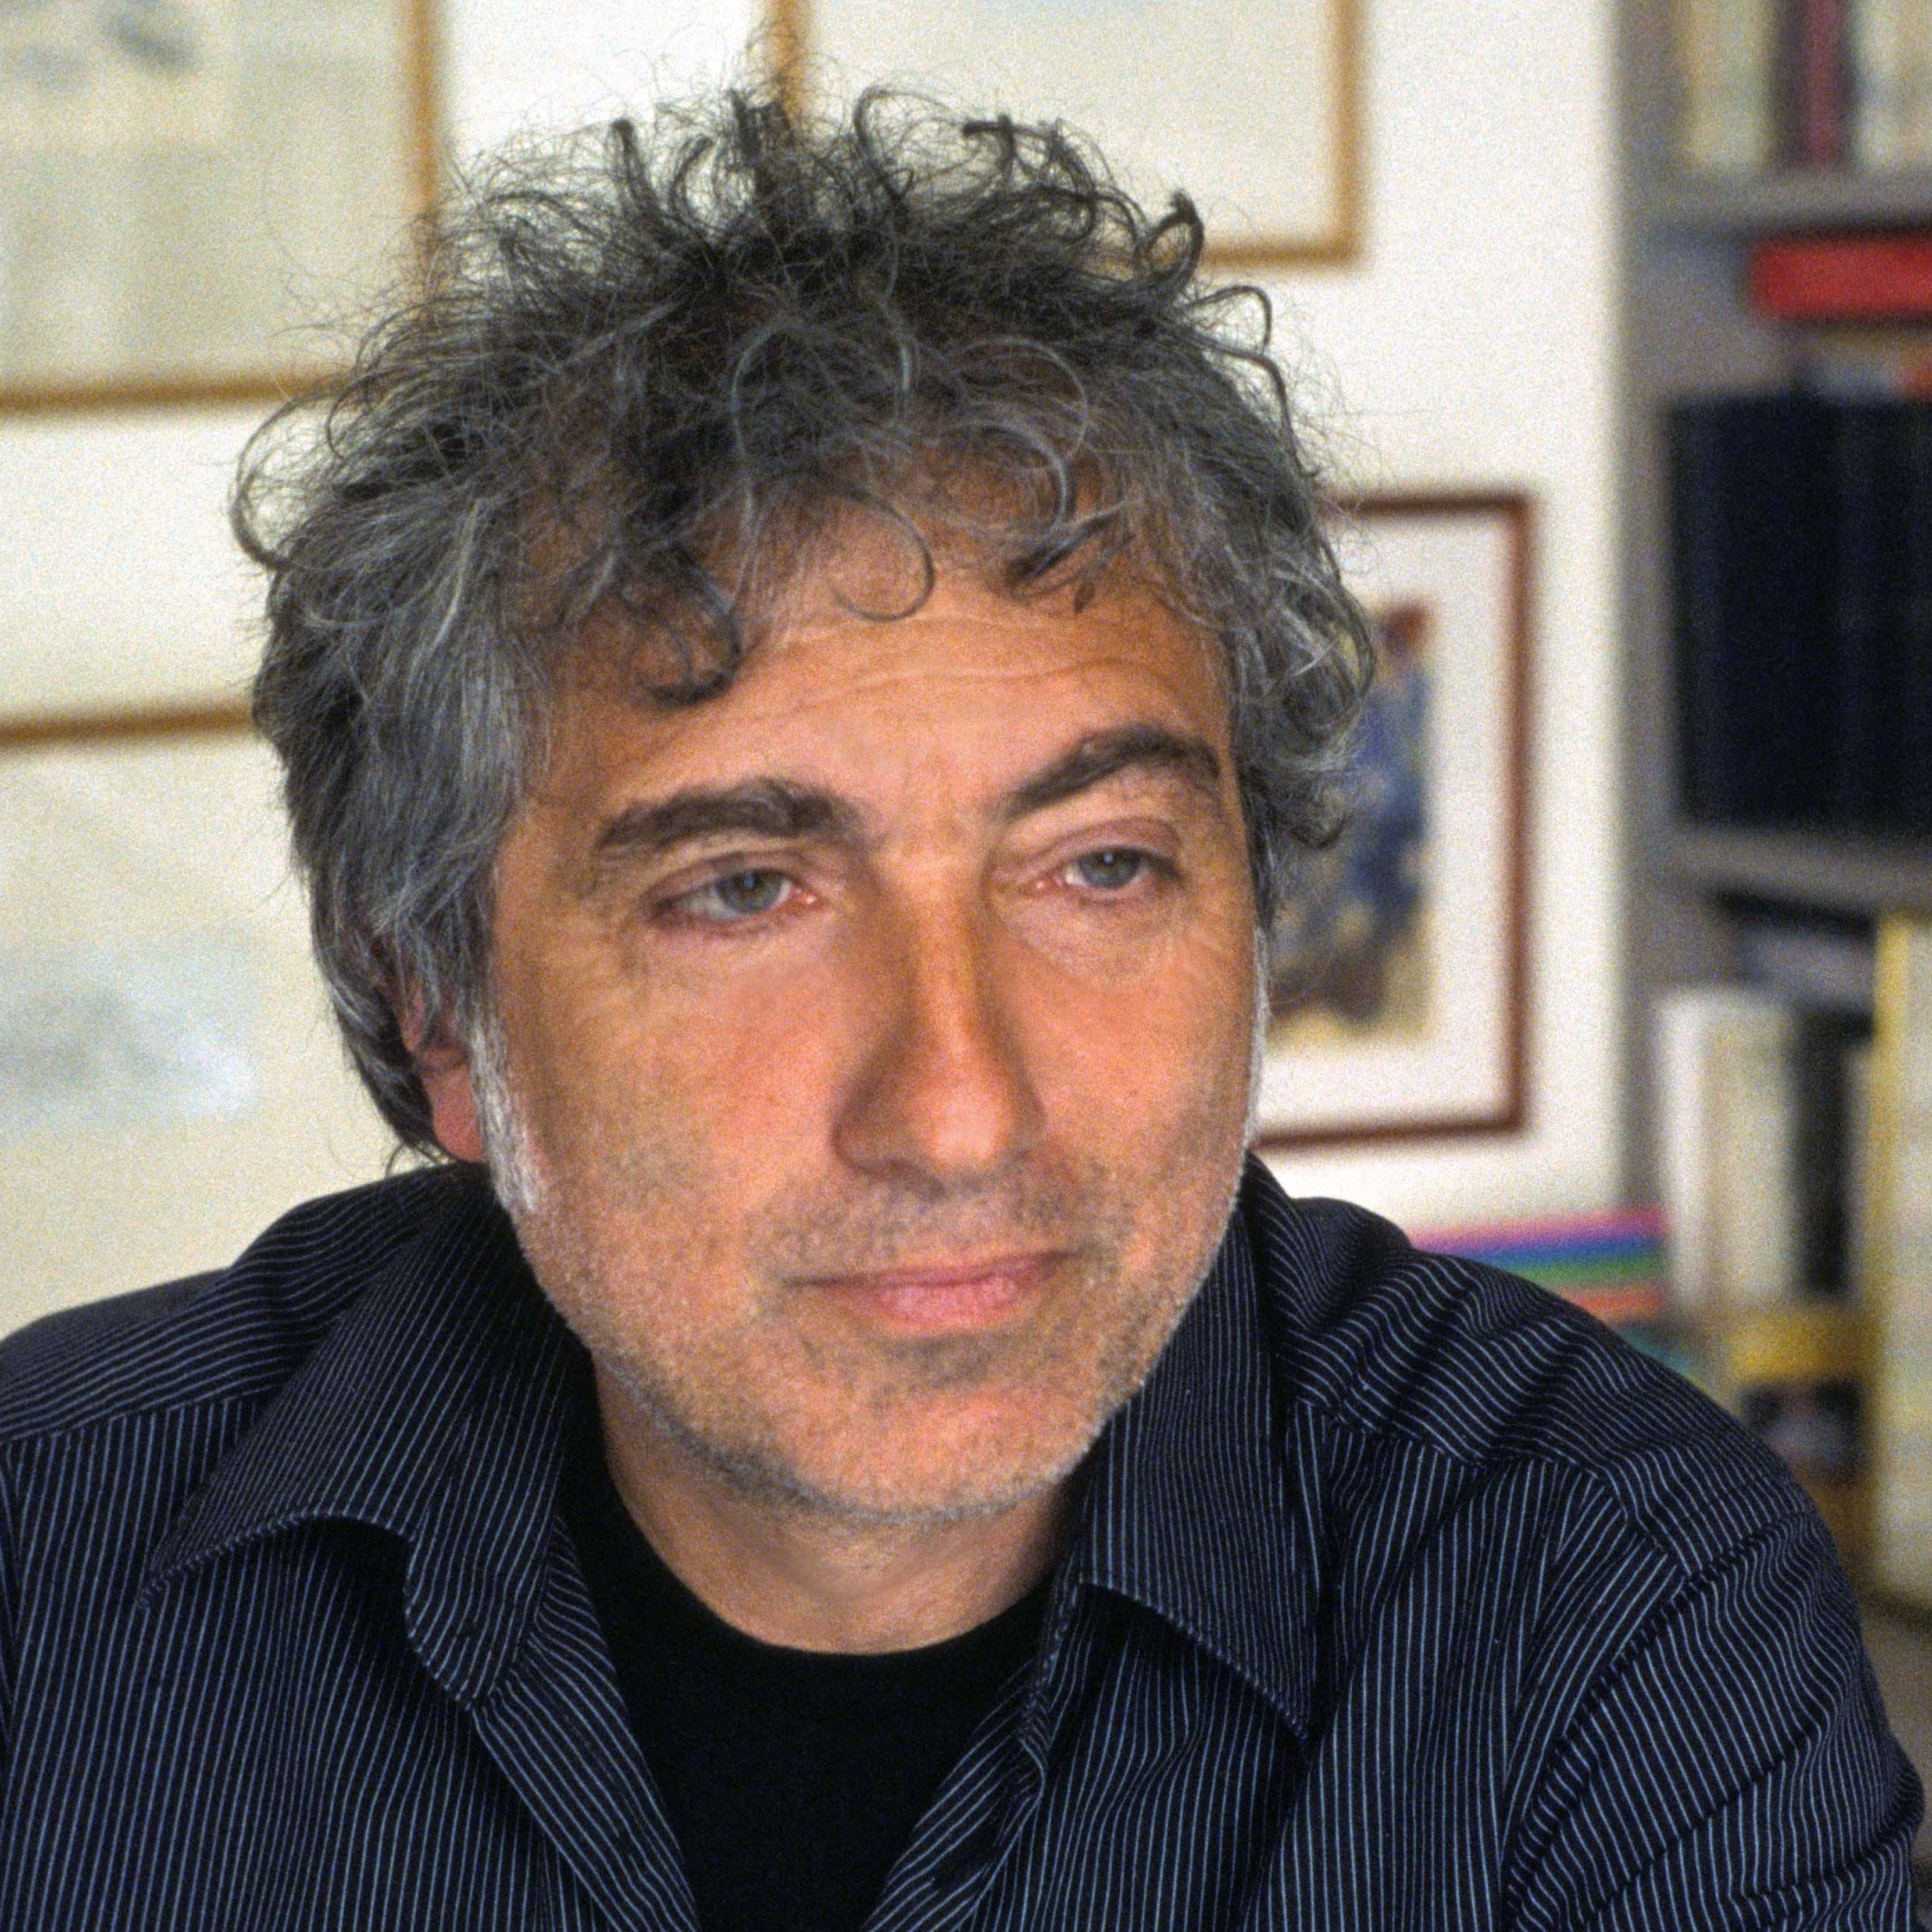 Adam Phillips is a psychoanalyst whose previous books include Going Sane and Side Effects.